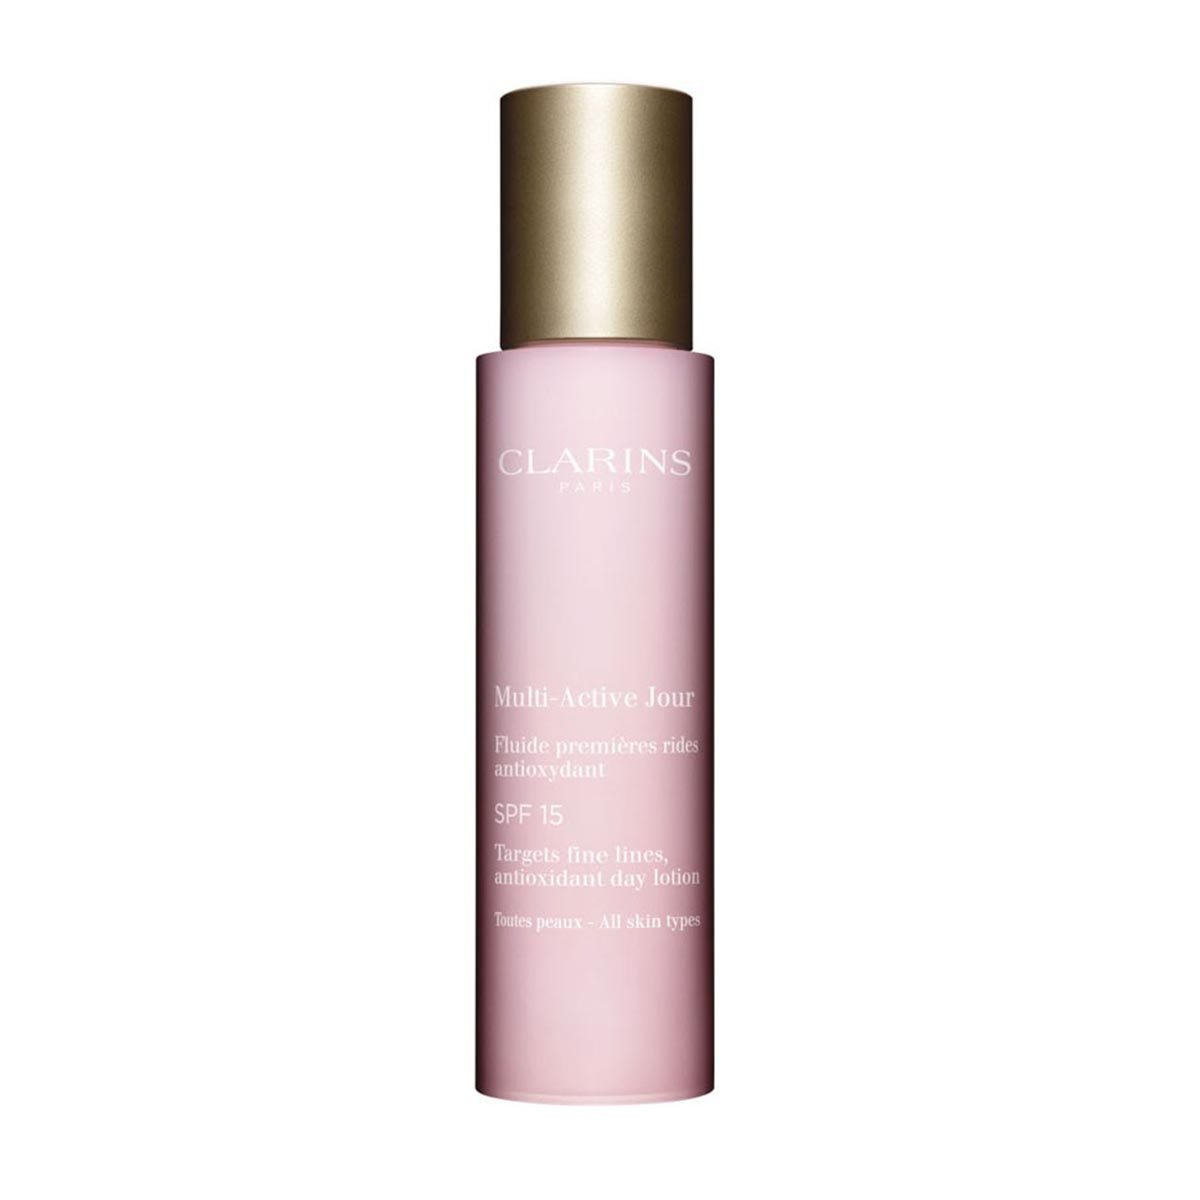 Clarins multi active antioxidant day lotion spf15 all skin types 50ml